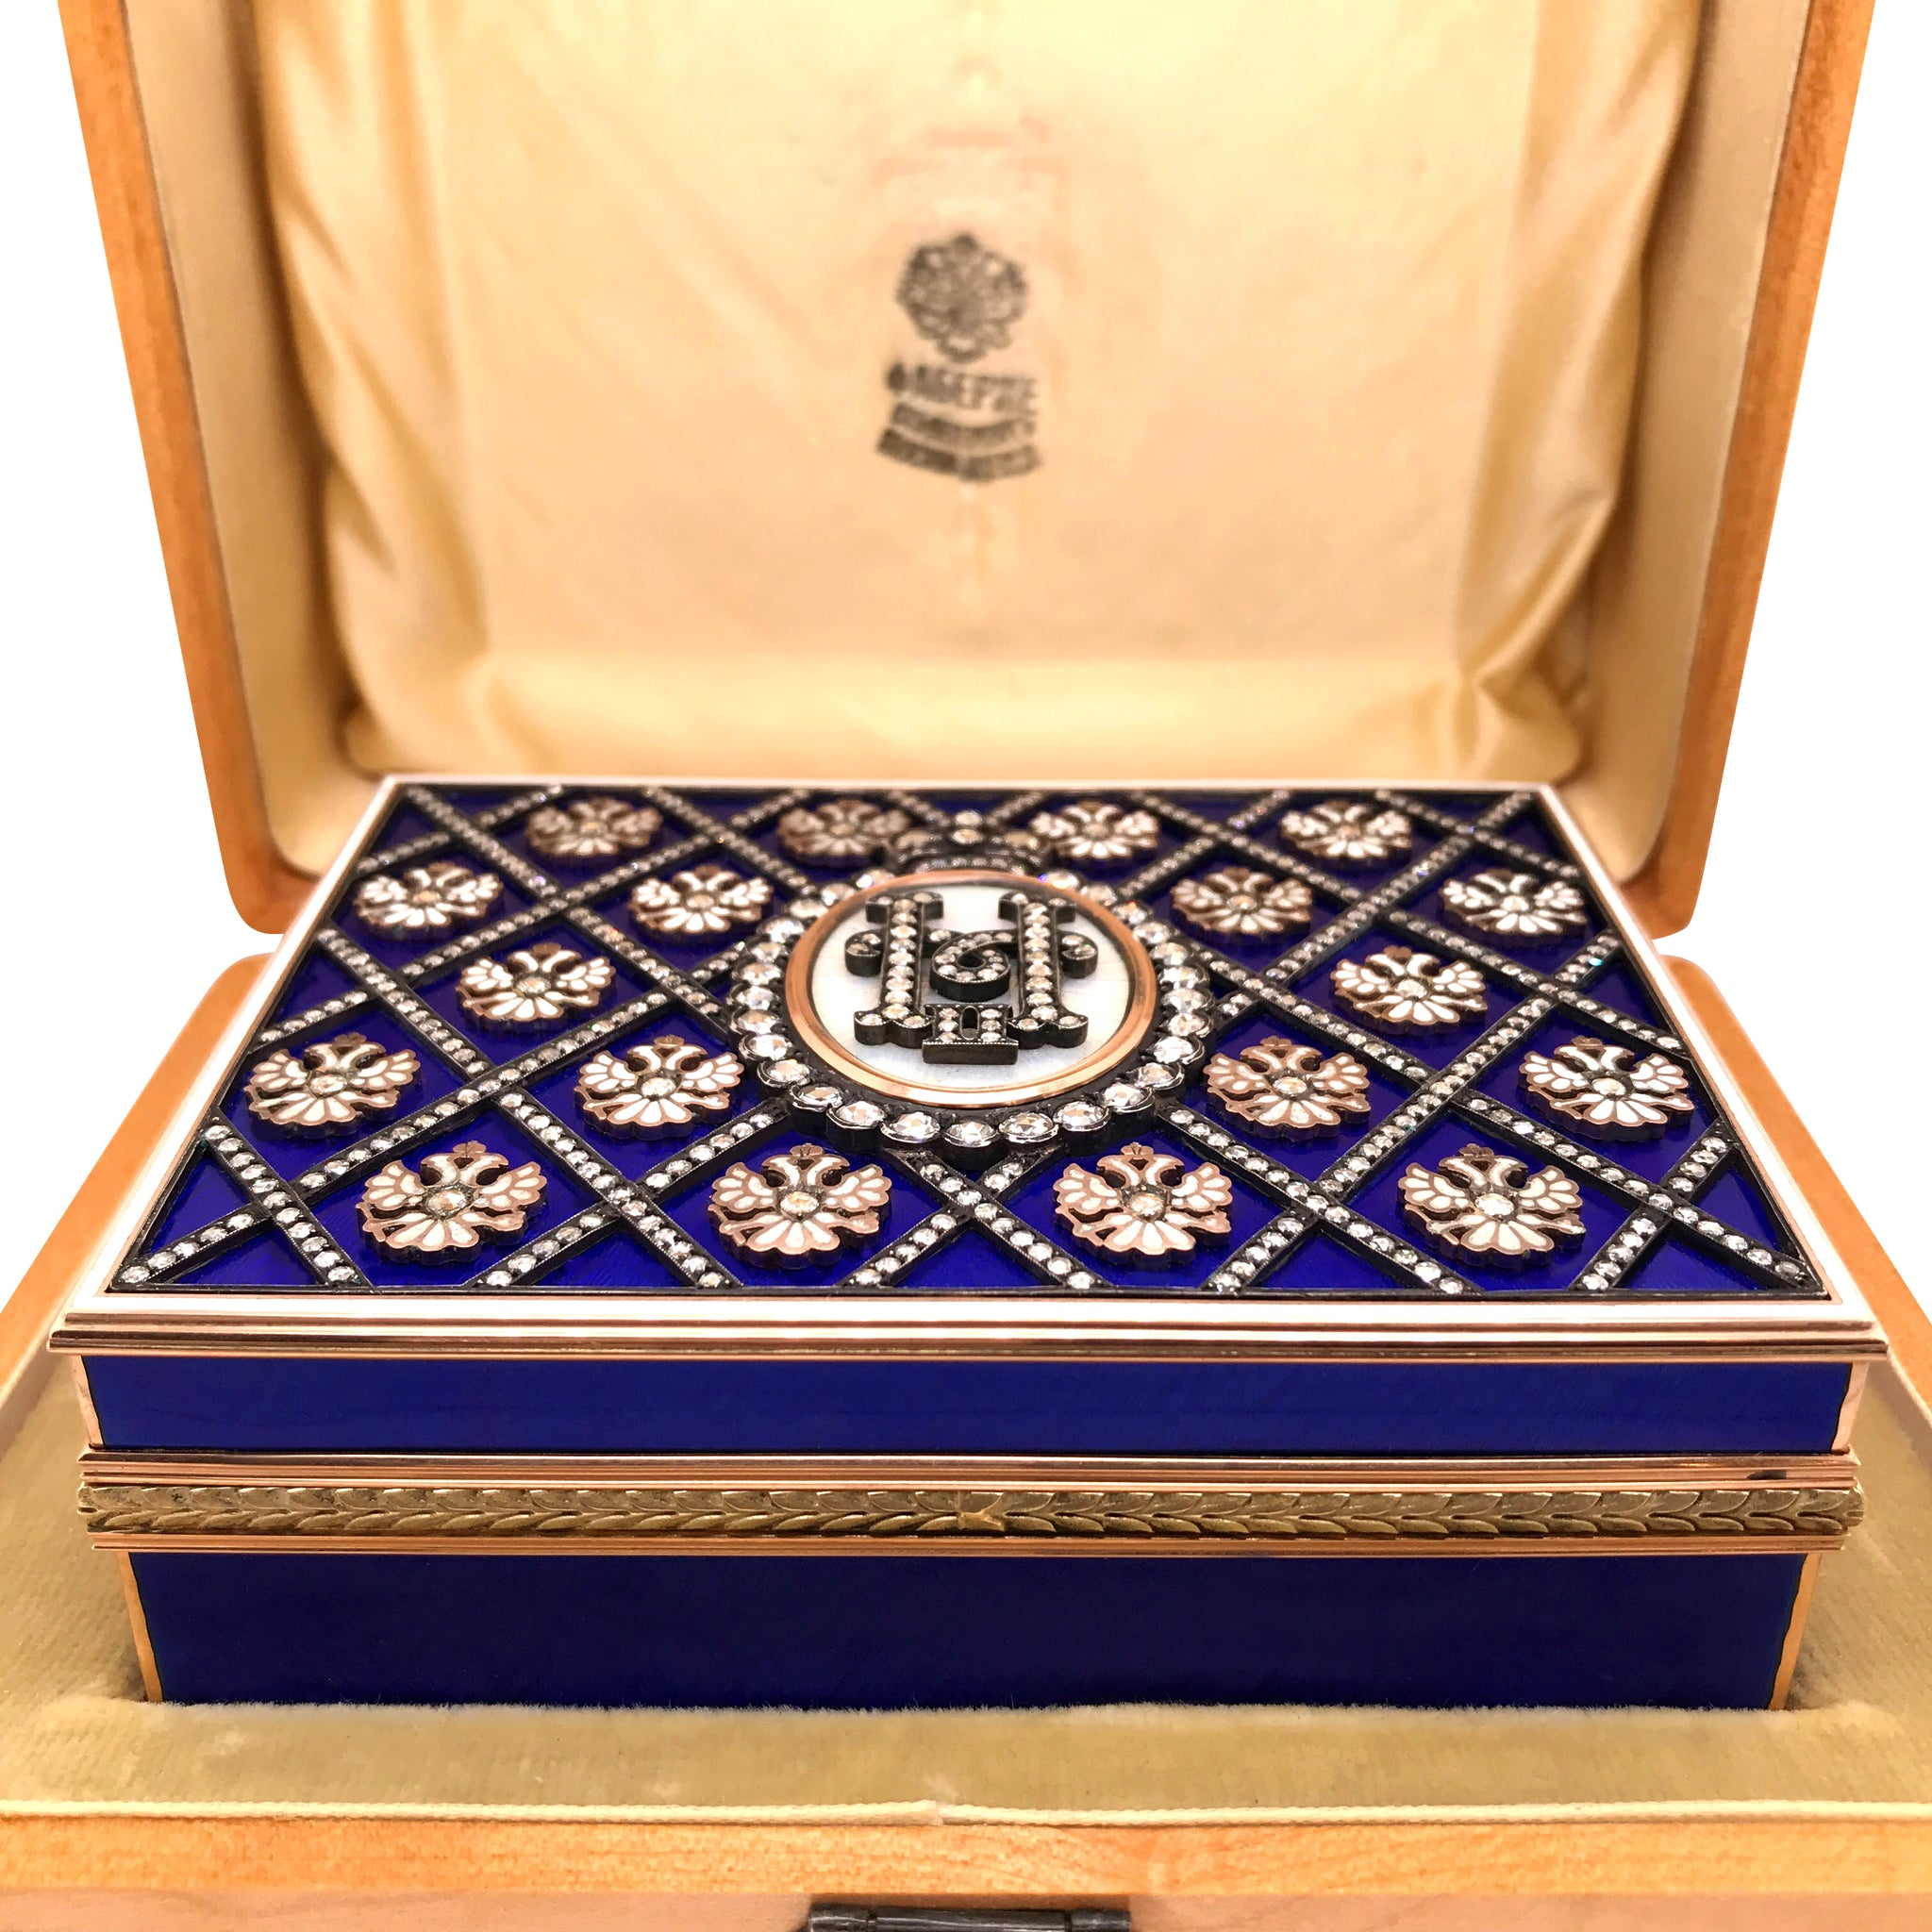 Faberge, Gold Diamond Cigarette Case with Blue Guilloche - Lueur Jewelry